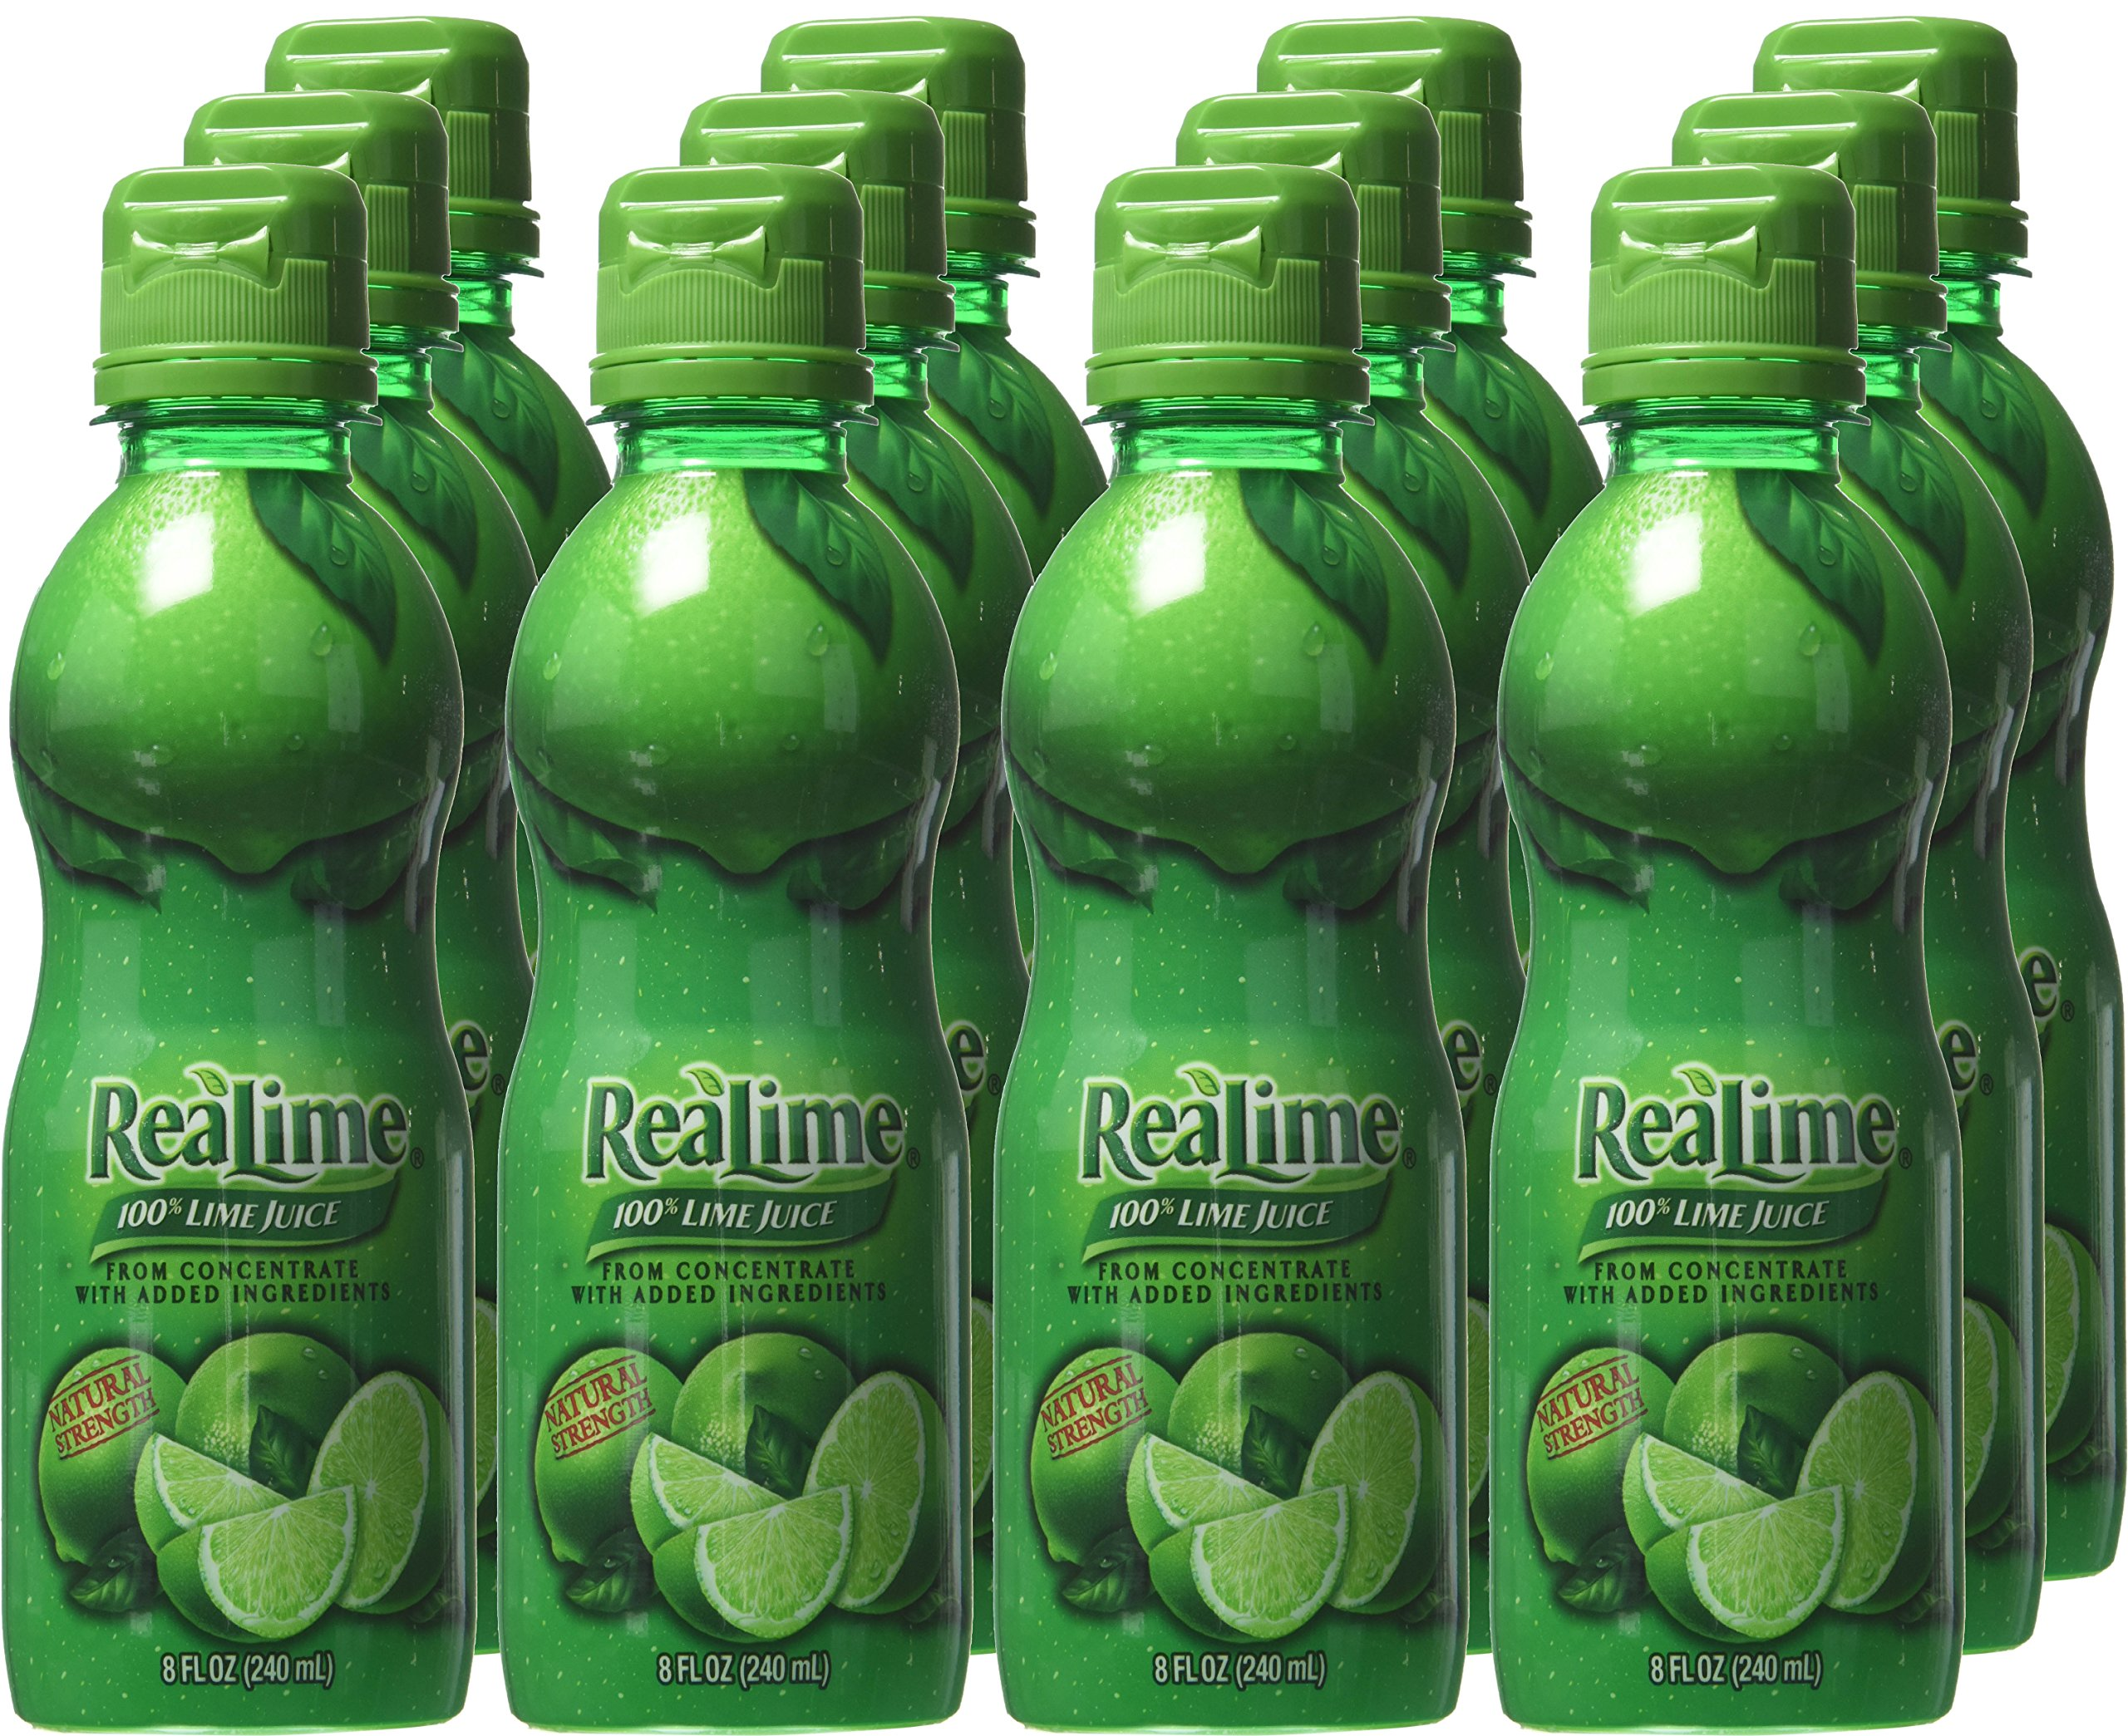 ReaLime 100% Lime Juice, 8 fl oz bottles (Pack of 12) by Realime (Image #2)